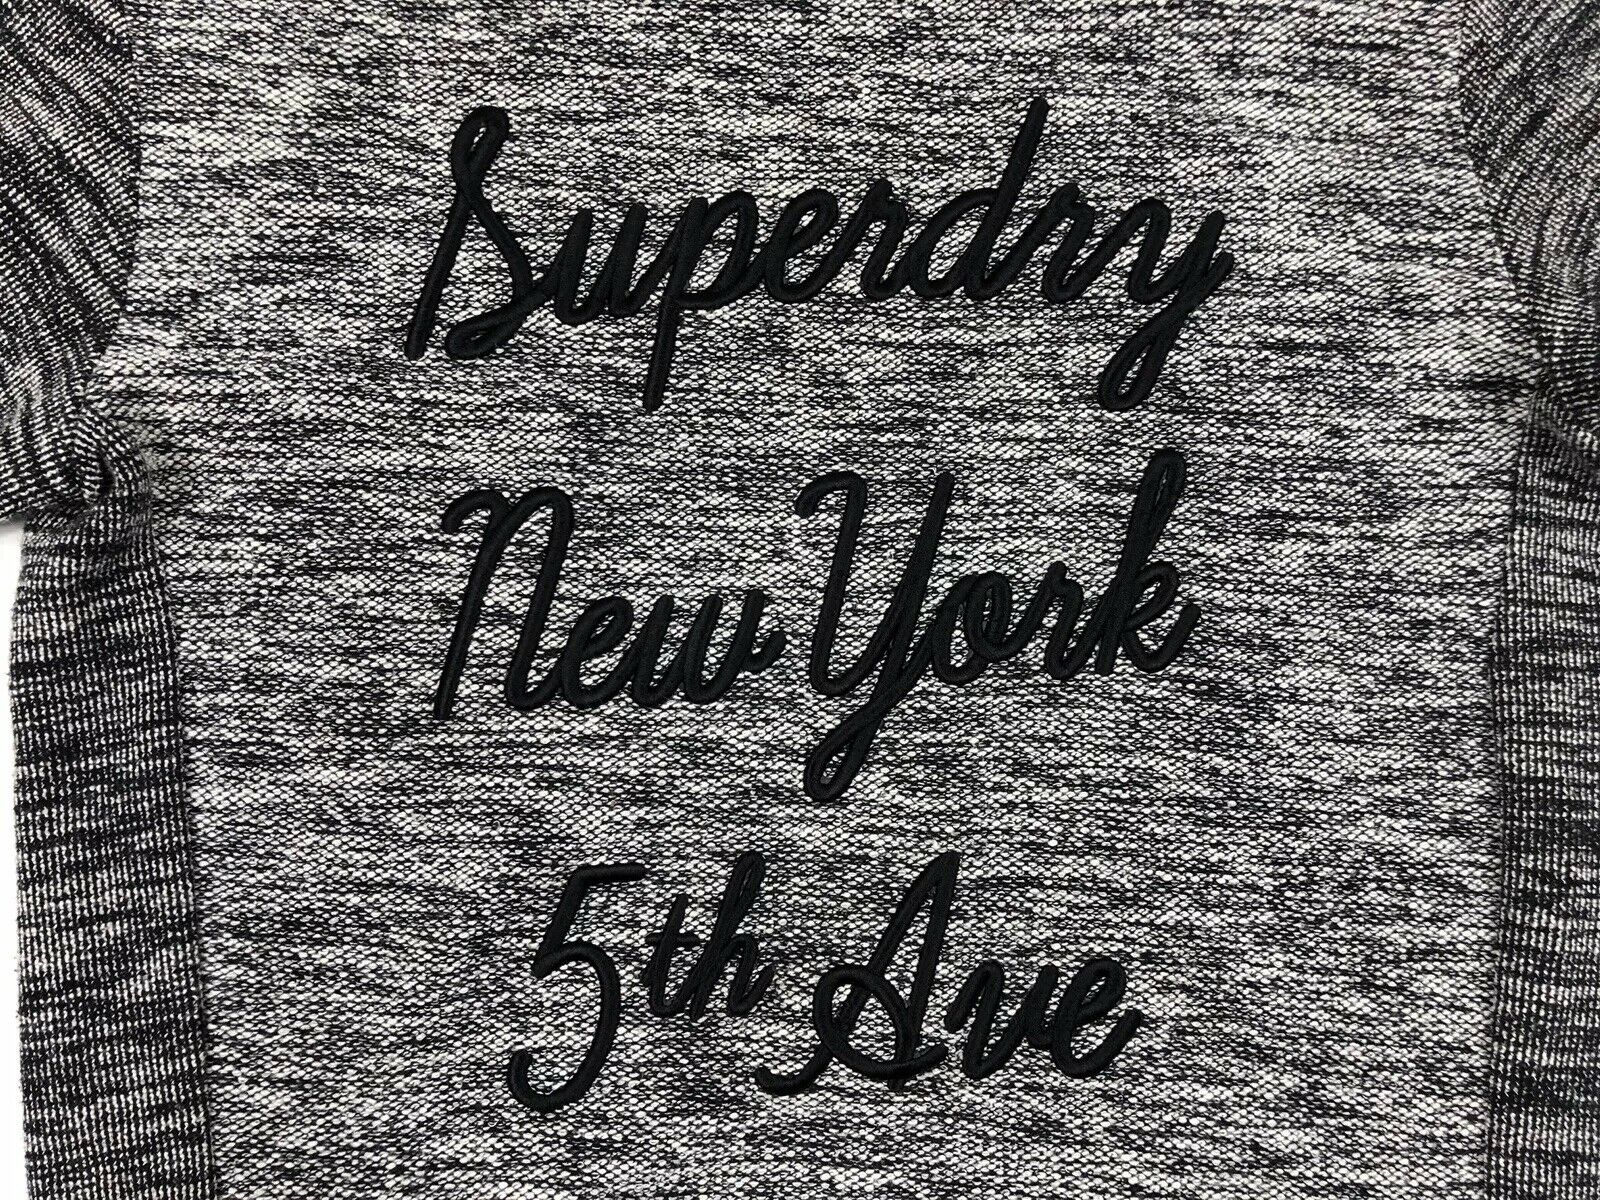 c642b4e6e9 ... Superdry Women s New York York York 5th Ave Spell Out Grey Zipper  Sweater Dress Size Small ...